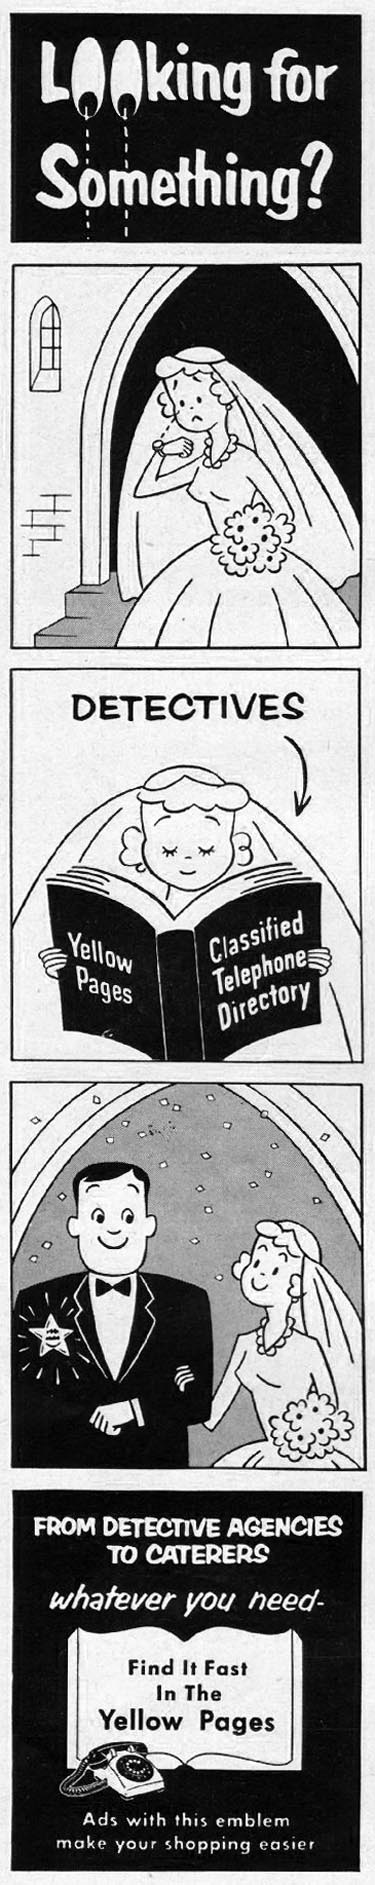 YELLOW PAGES LIFE 09/09/1957 p. 86